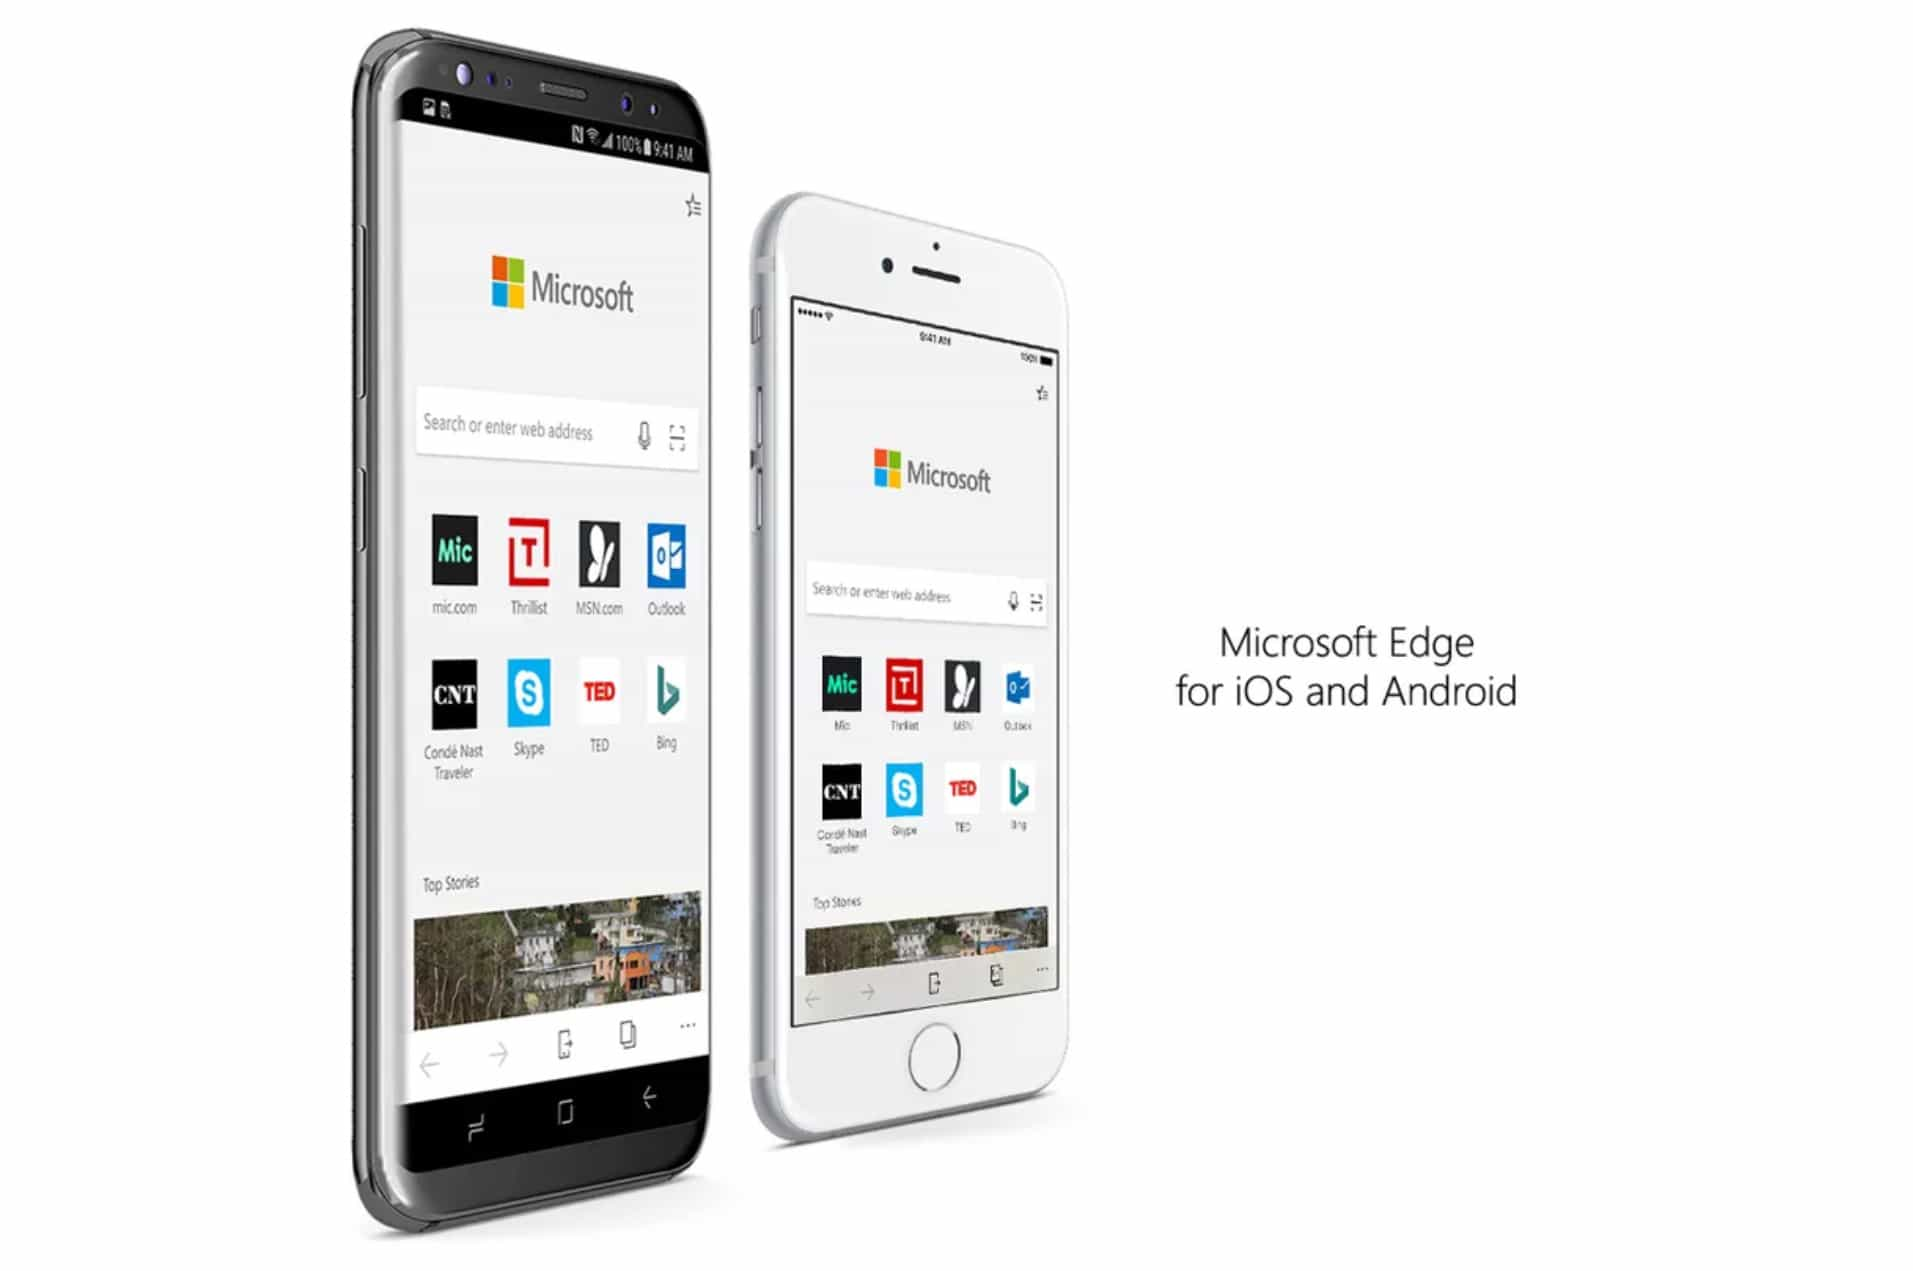 Microsoft Edge for iPhone